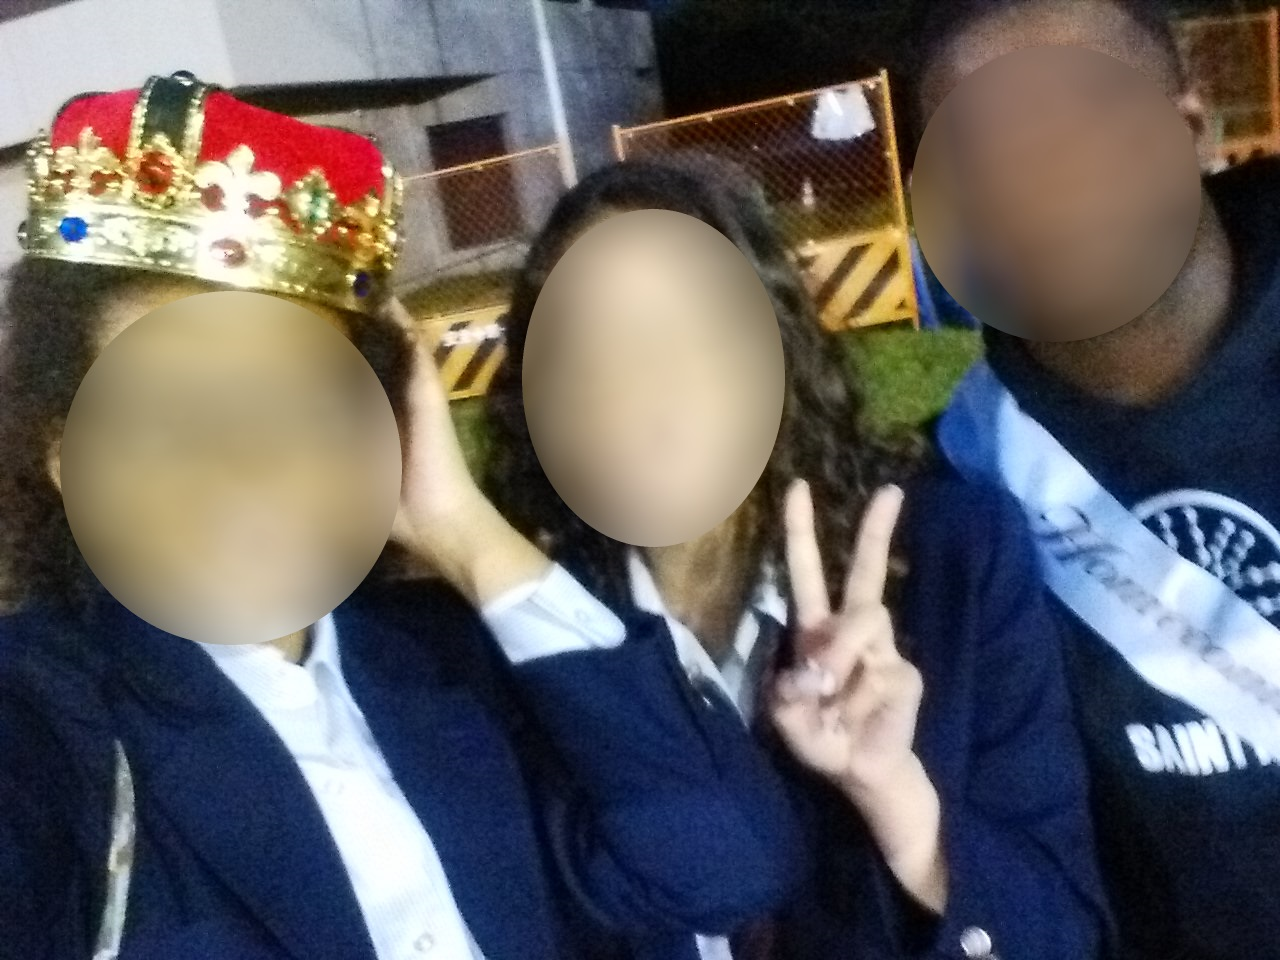 14 (left to right:) Me with the Homecoming King's crown, Italian girl and the King